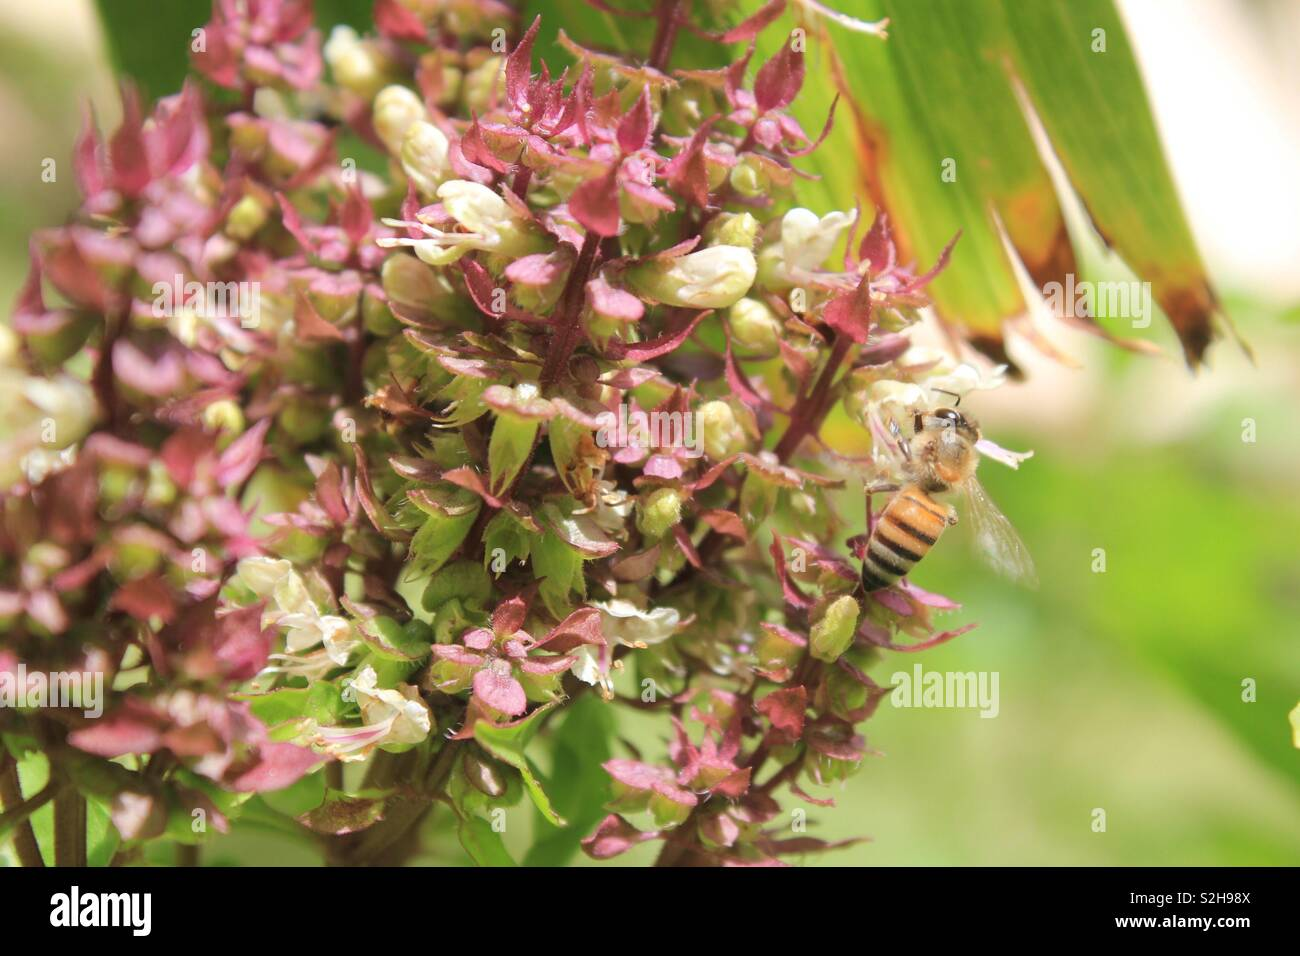 The bee stuck on flowers Stock Photo